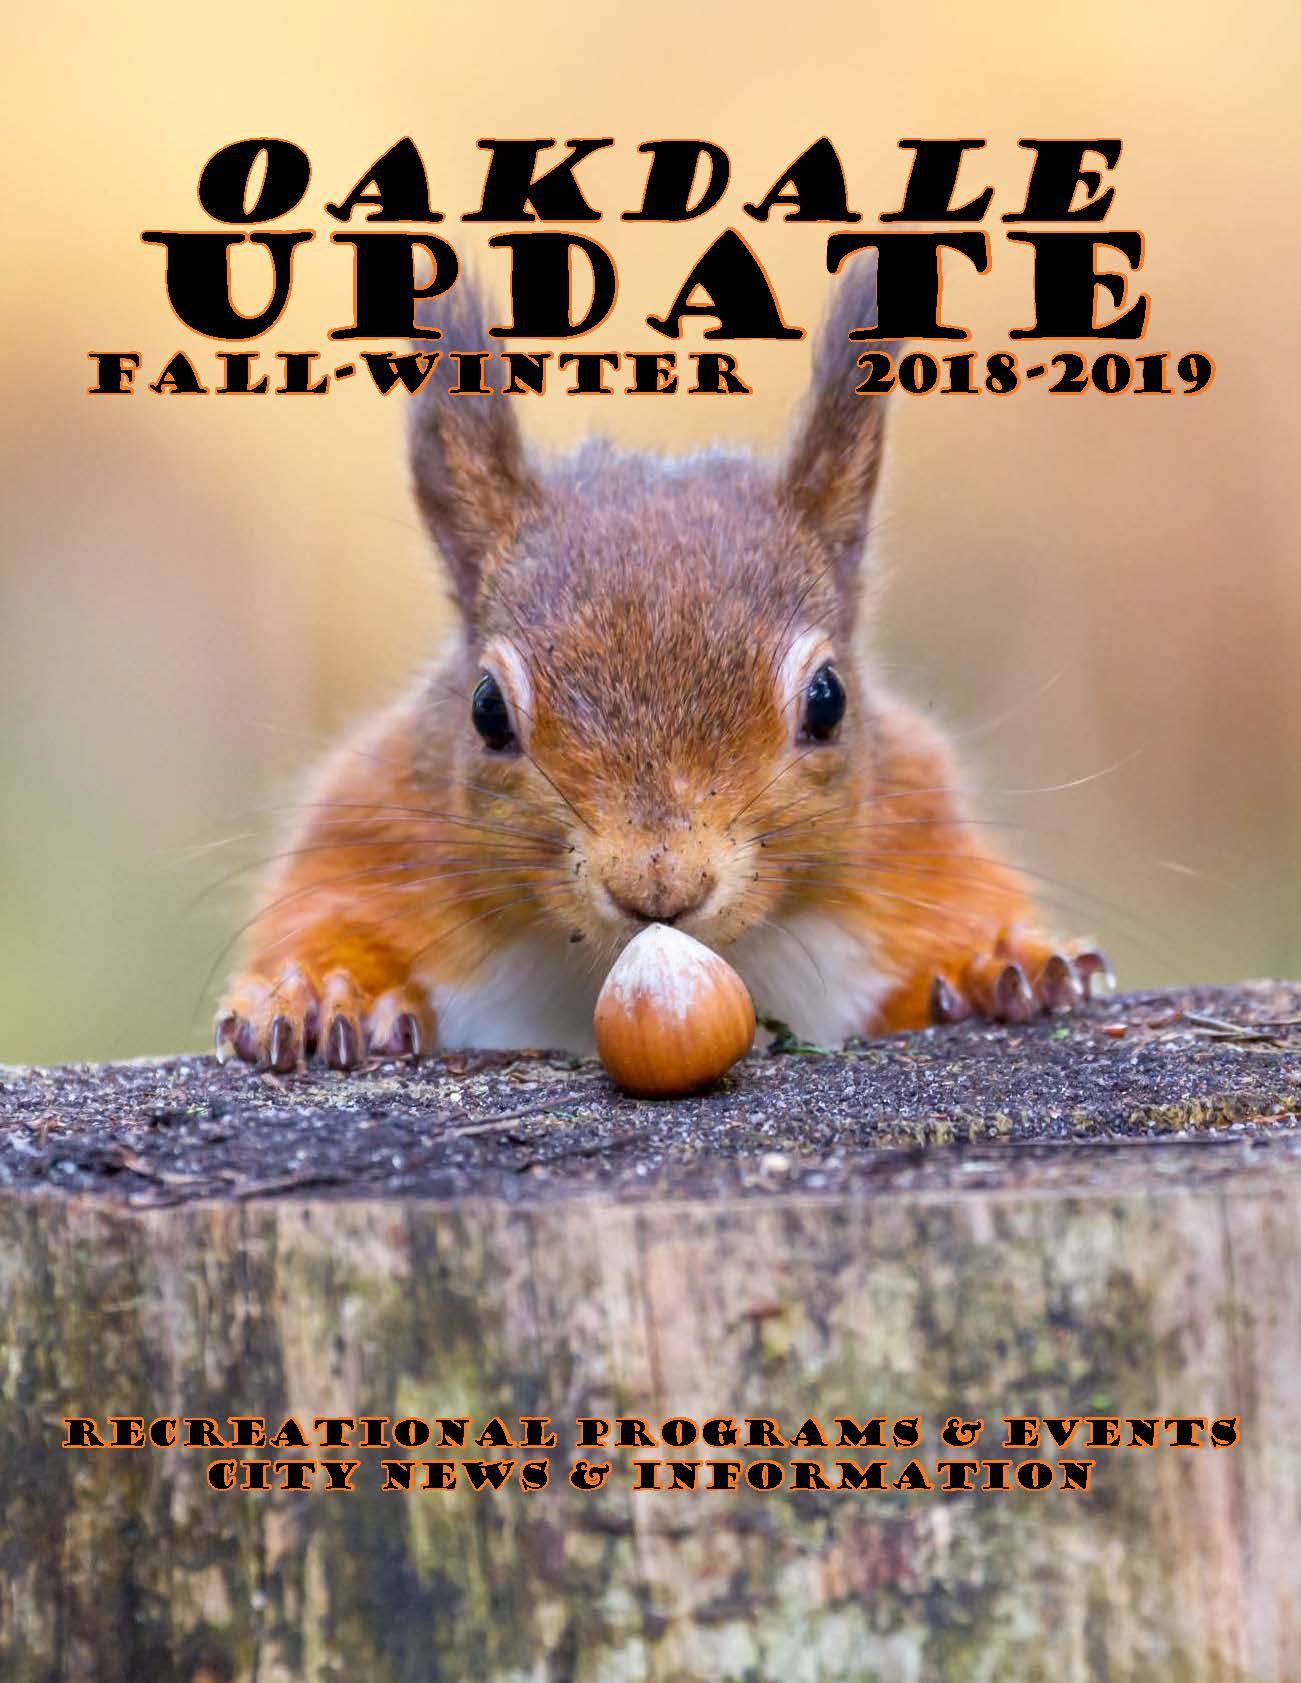 Cover of Oakdale Update Newsletter for Fall Winter 2018 showing squirrel with an acorn